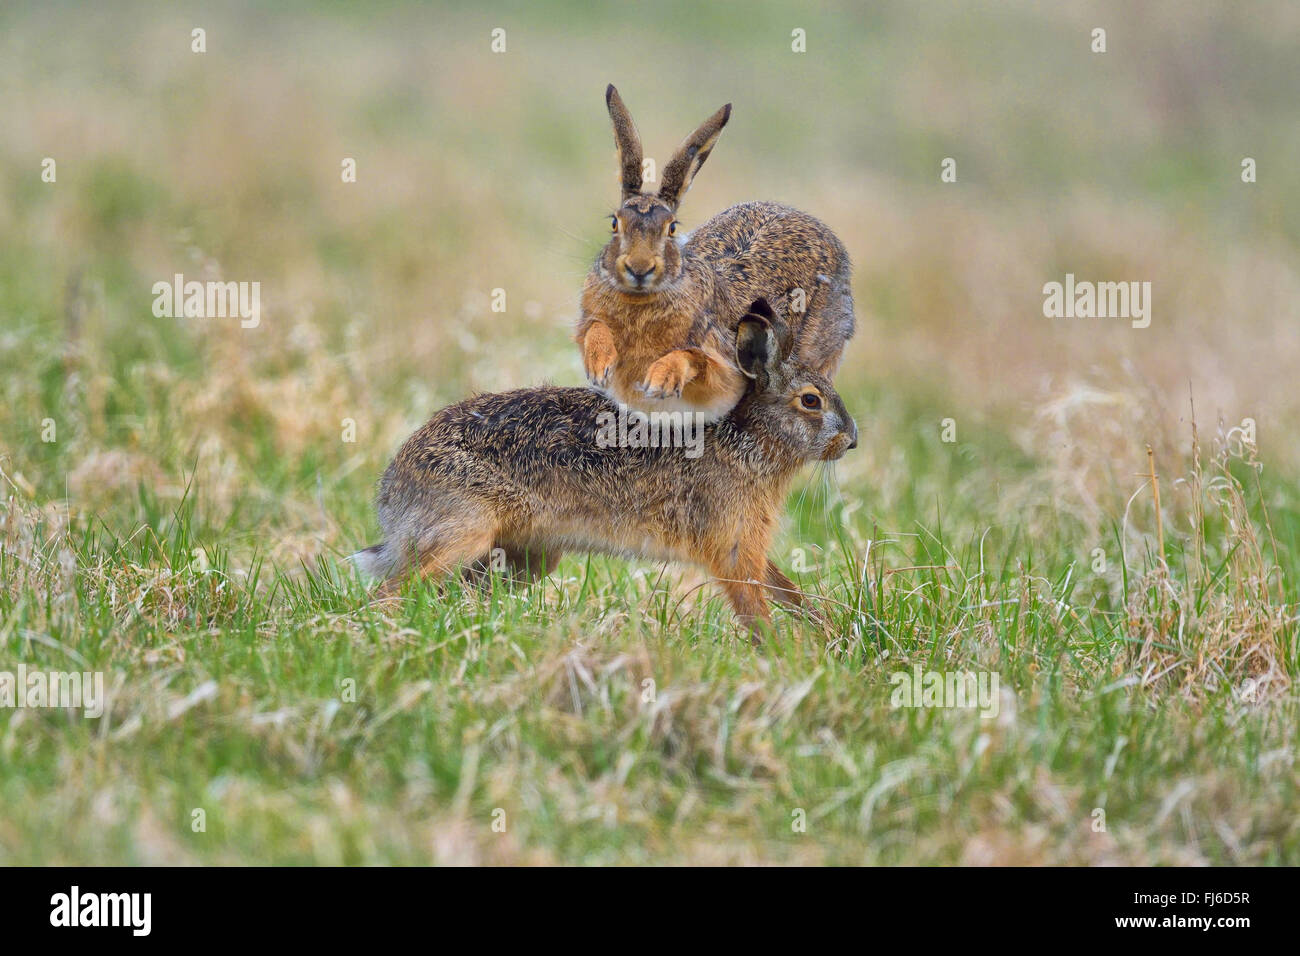 European hare, Brown hare (Lepus europaeus), two males in fight during the mating season, Austria, Burgenland - Stock Image